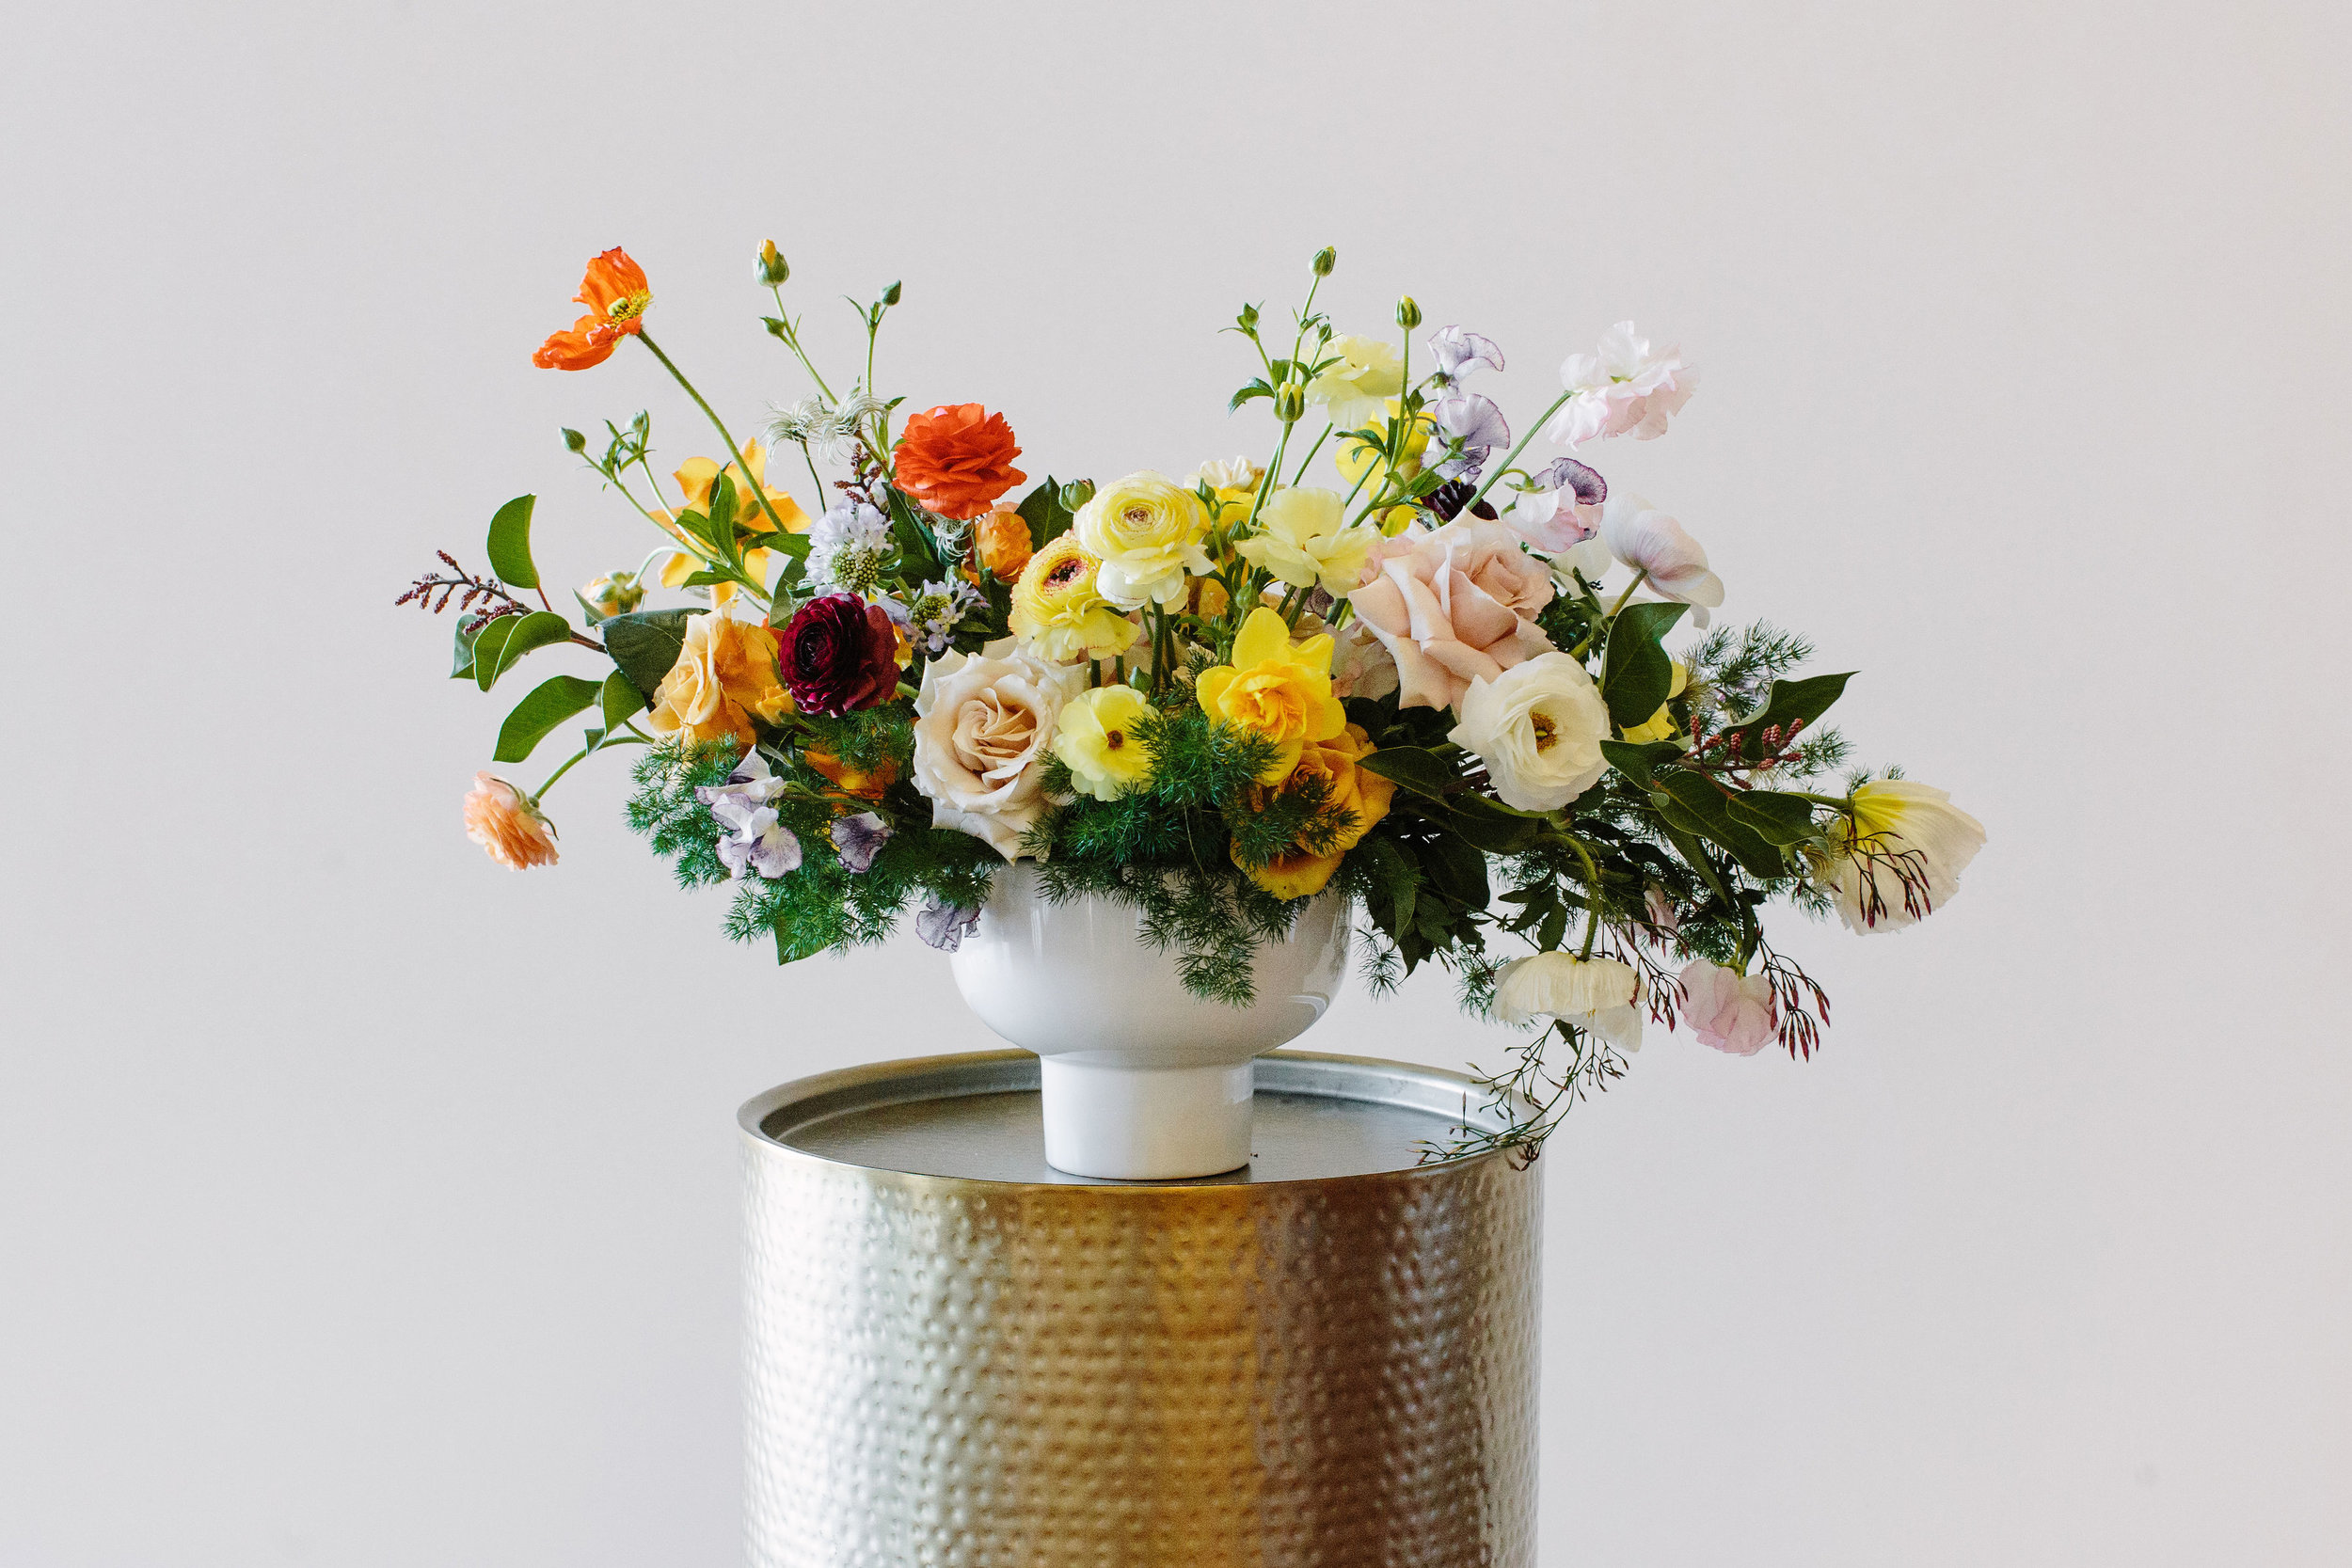 Design: @brambleandbee at the Team Flower Conference Photo: @hanhaston Container: Orion Compote from Accent Decor